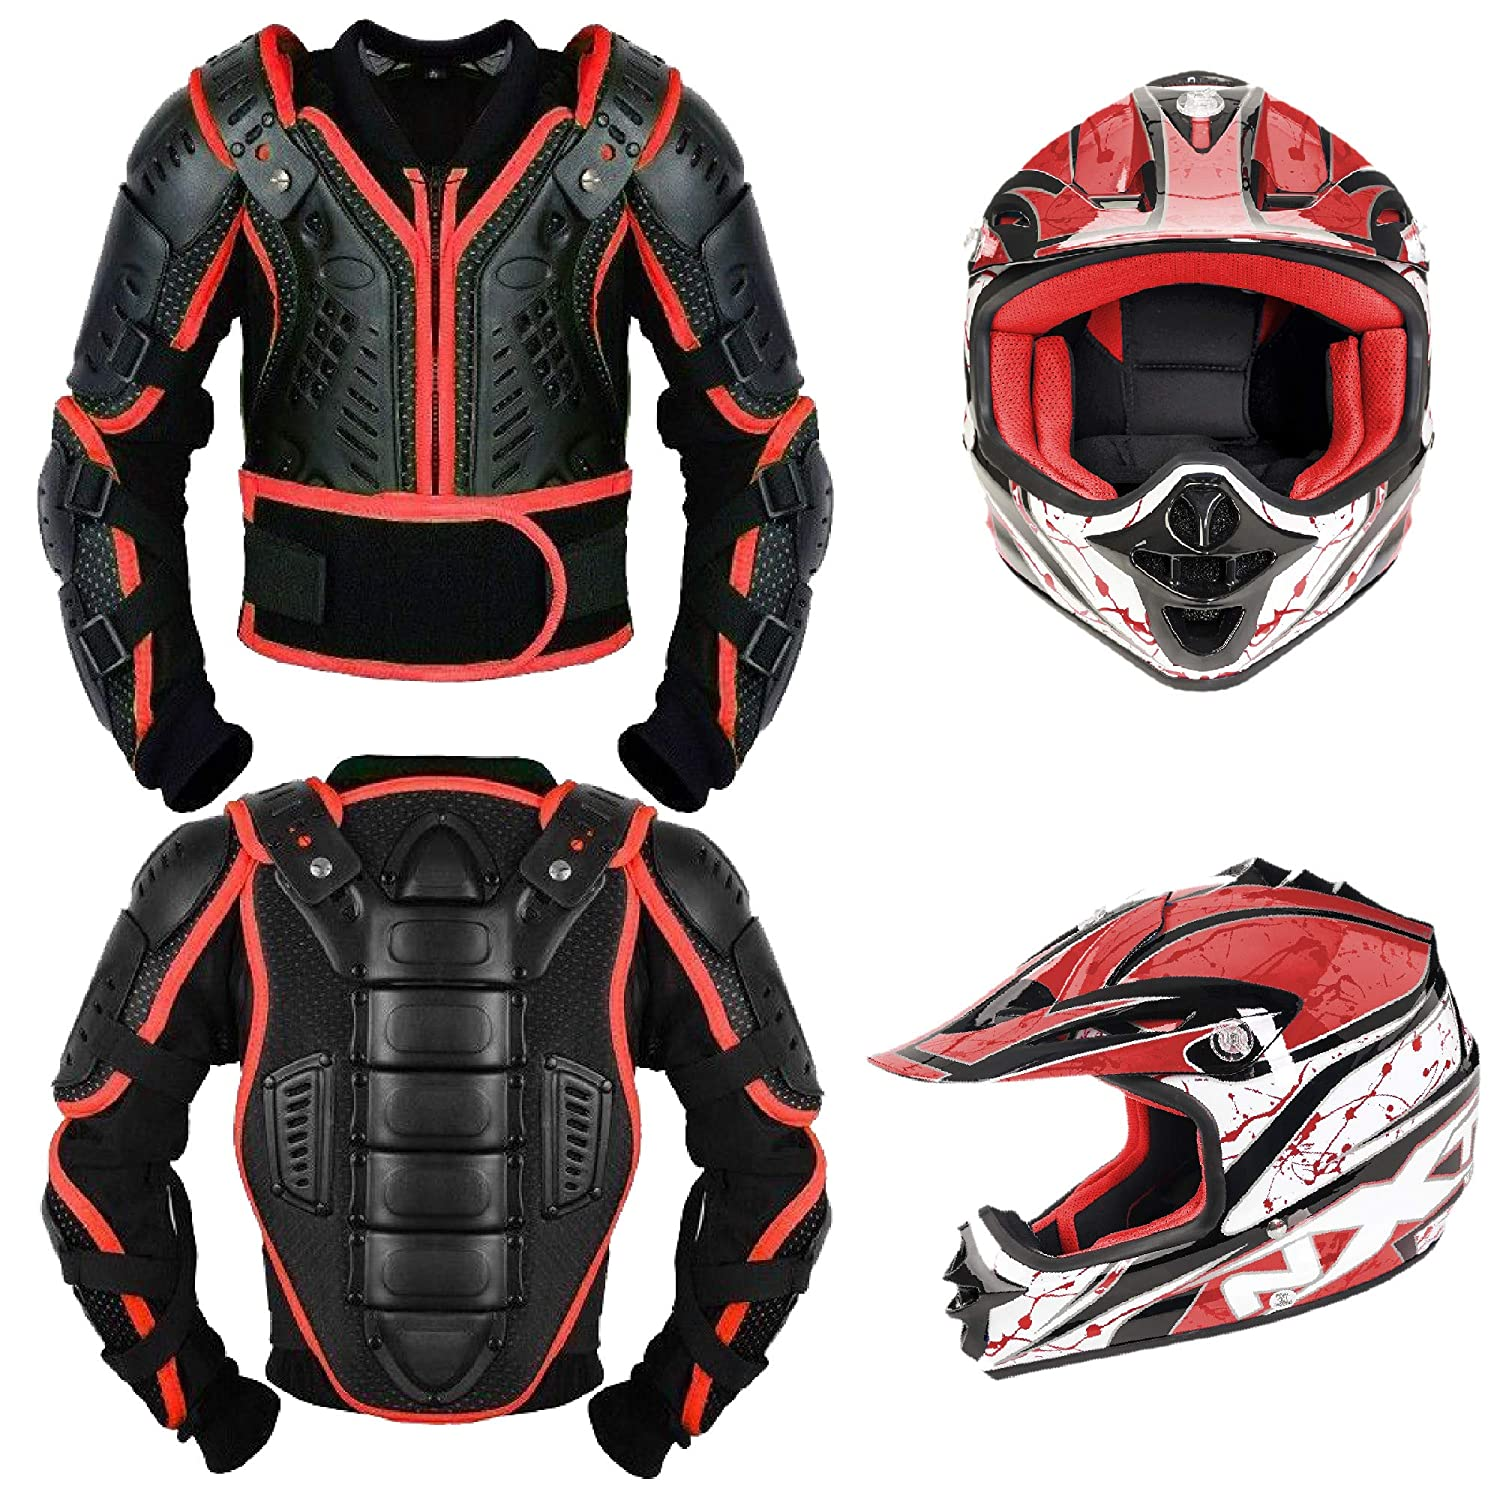 Year 10 Kids Motorbike Body Armours Motorcycle Gear Armors Motorcross Bikes Guard with Motorbike Helmet Childern Full Face Protection CE Approved Jacket